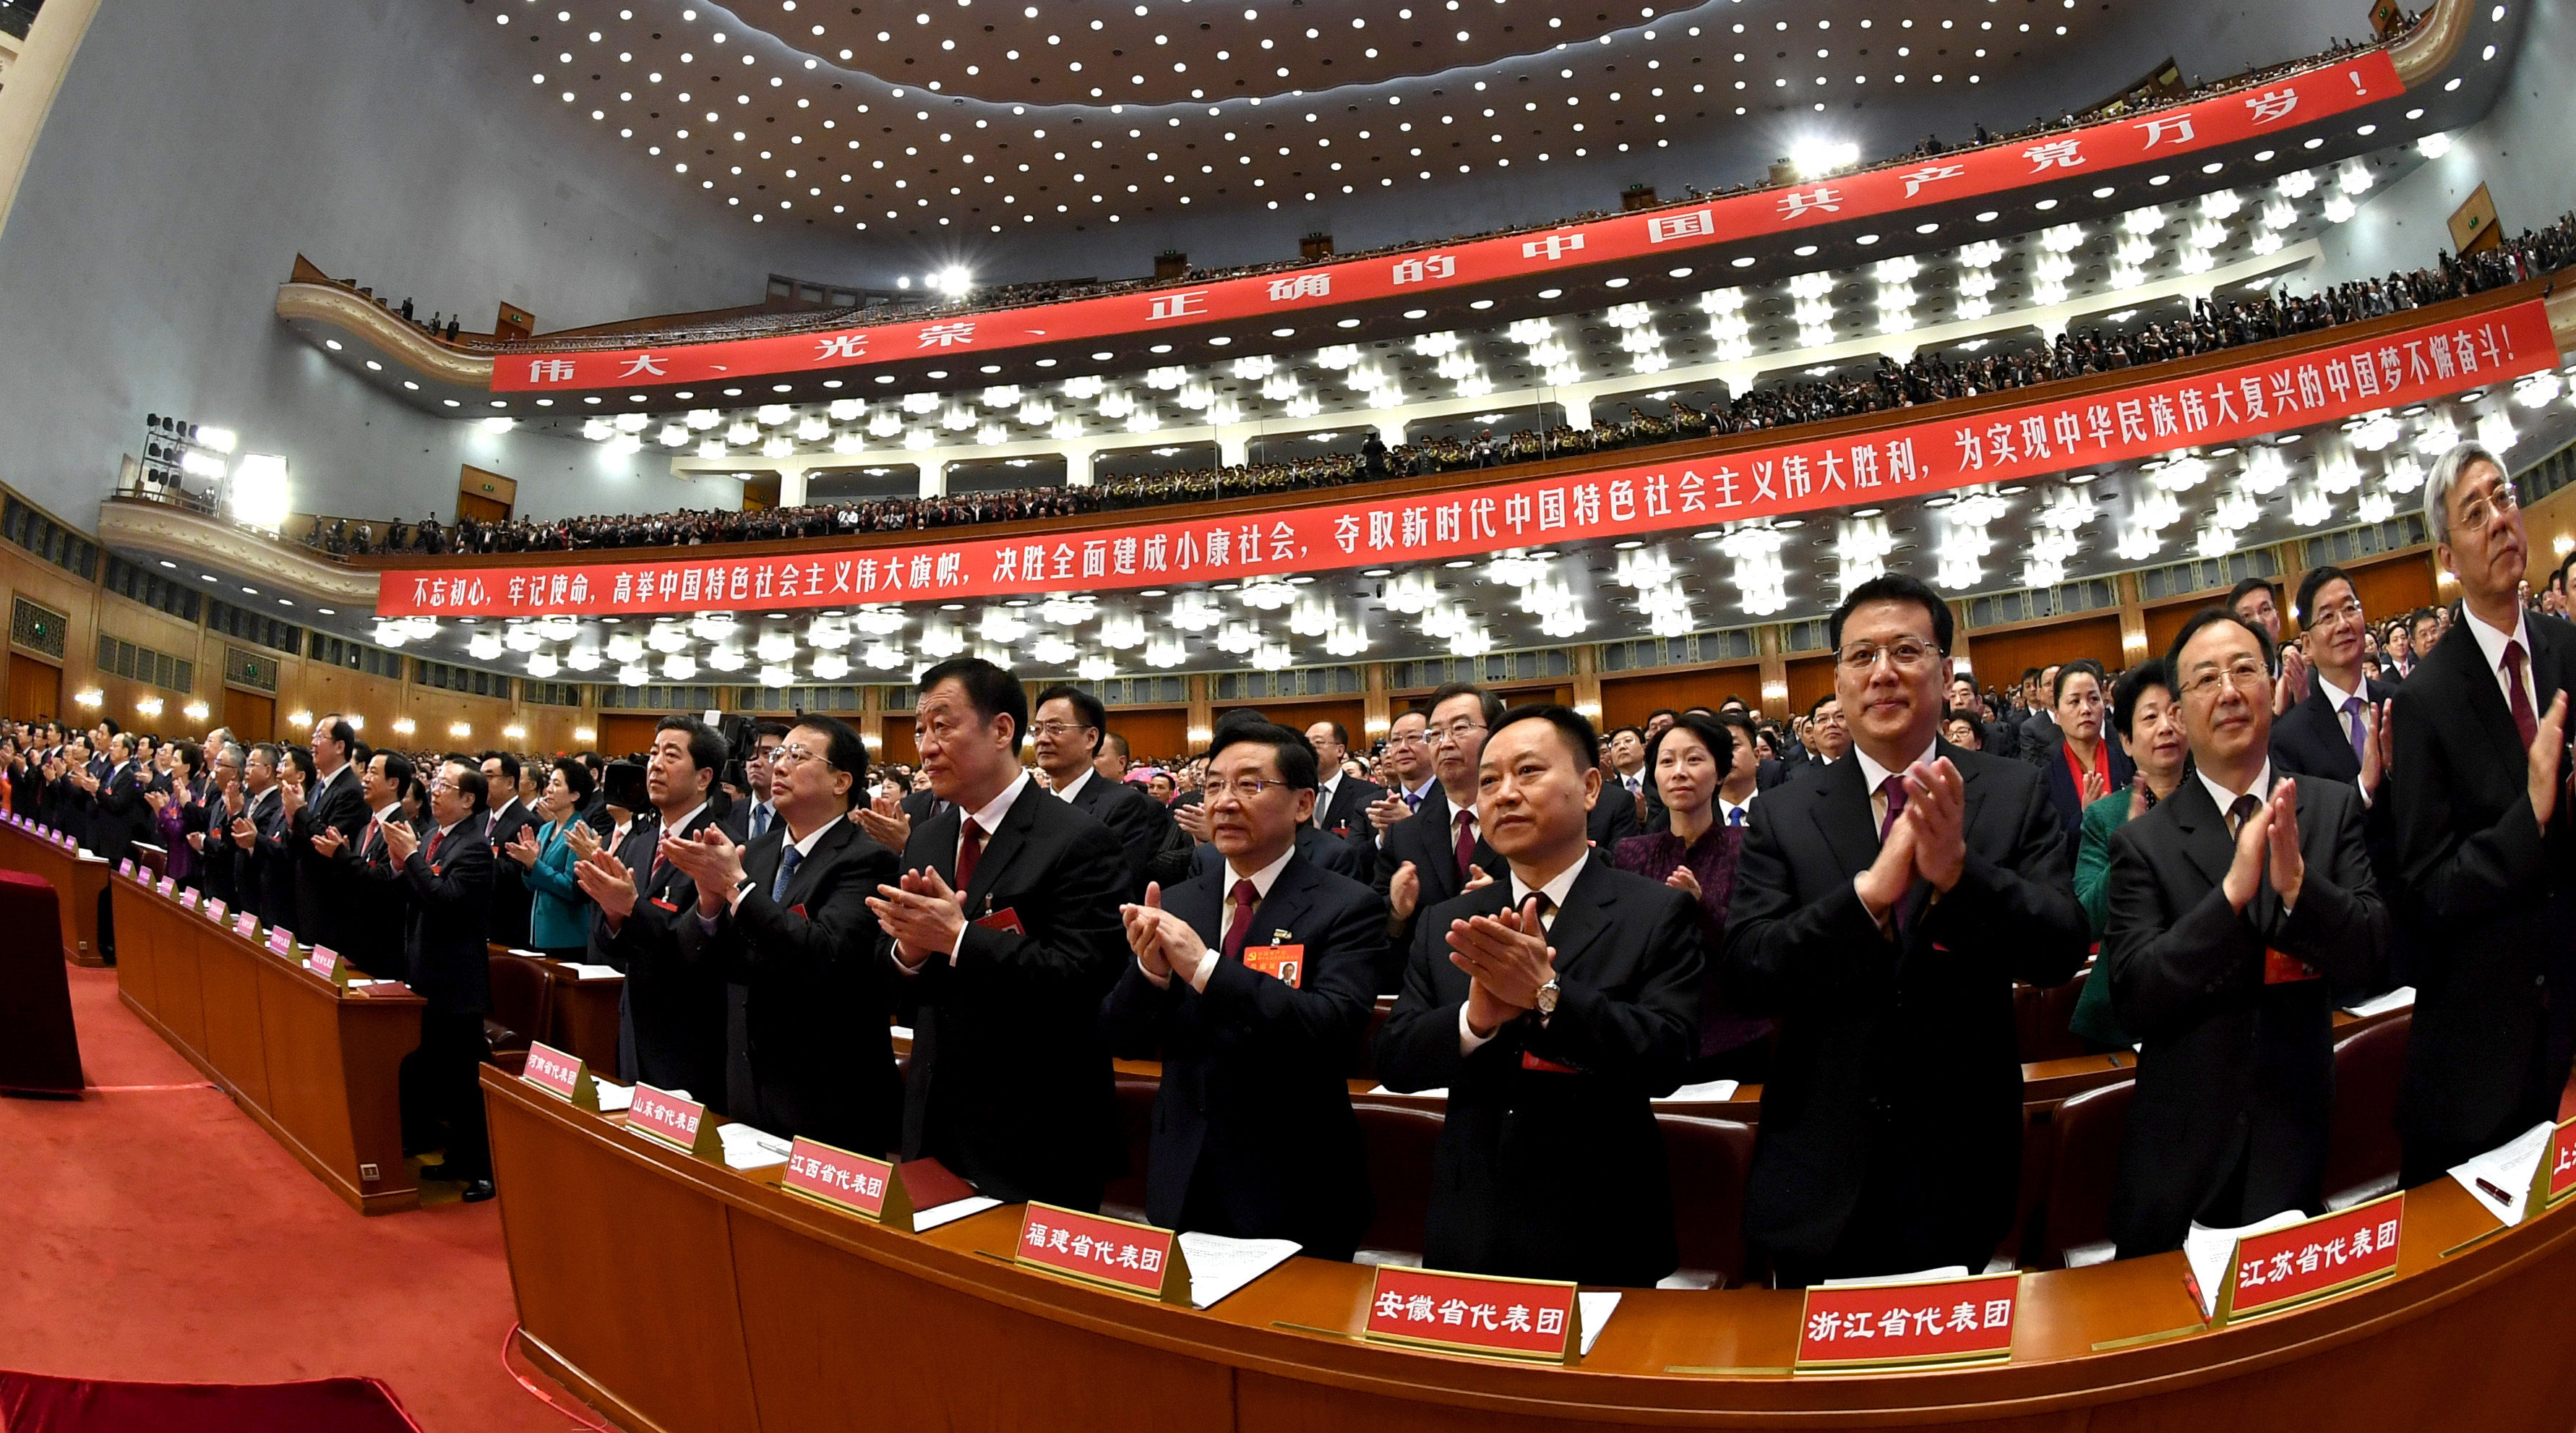 The Communist Party of China opens the 19th National Congress at the Great Hall of the People in Beijing, Oct. 18, 2017.